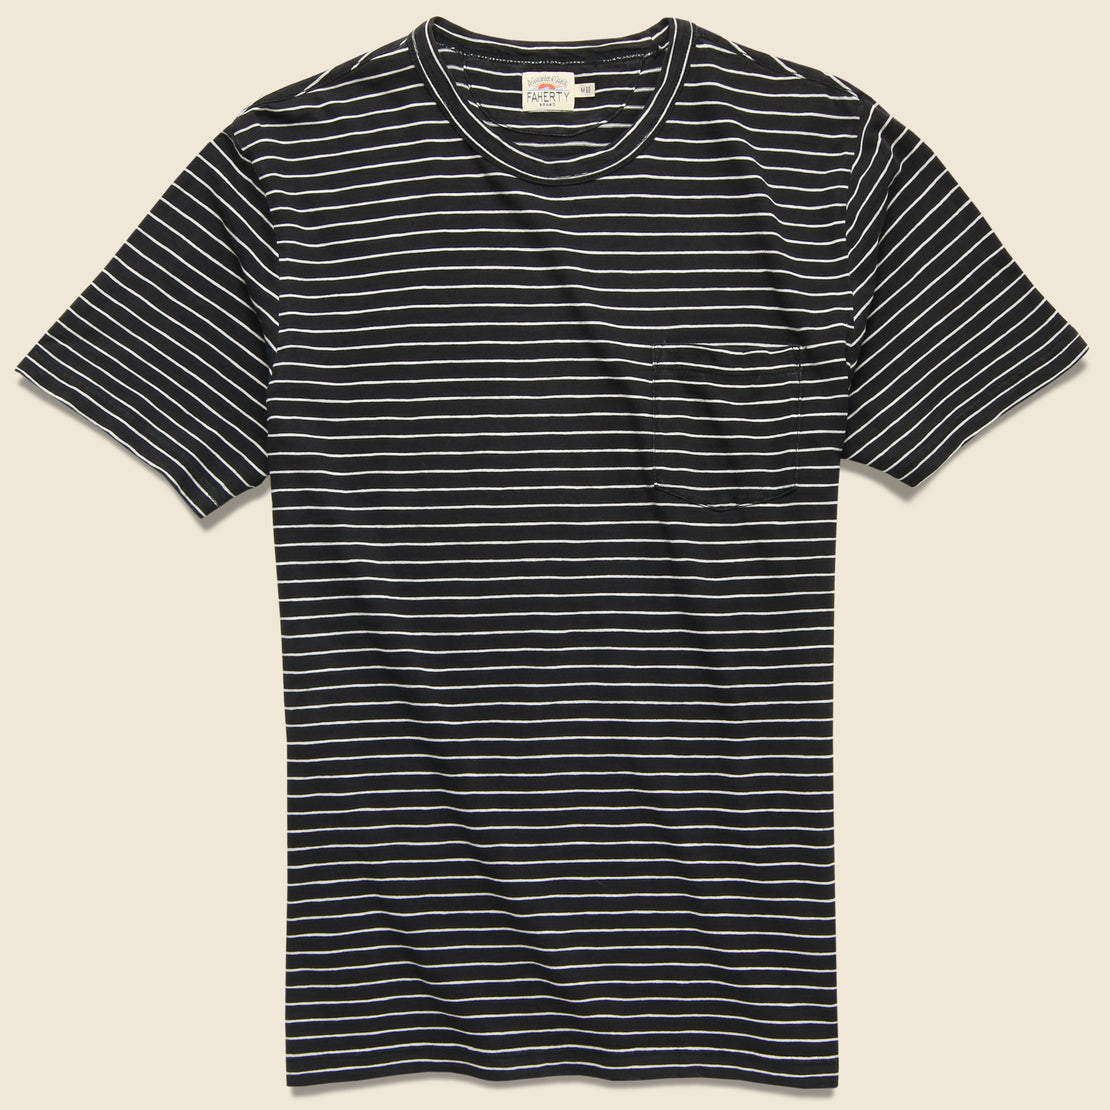 Faherty Indigo Pocket Tee - Black/White